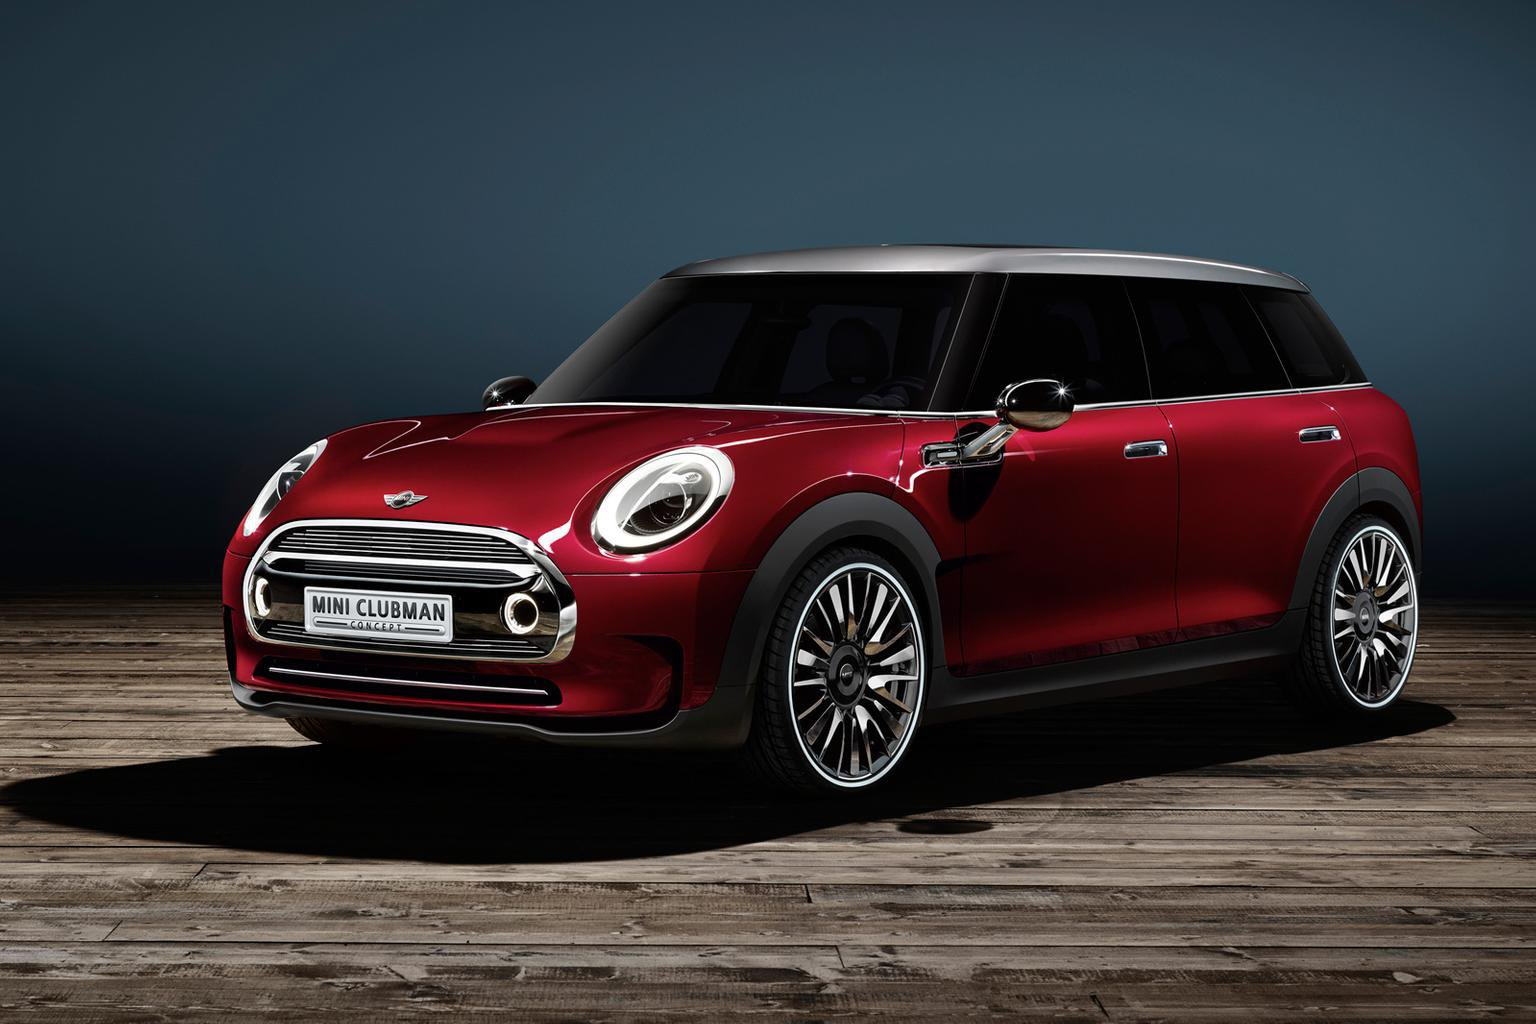 2015 Mini Clubman Concept revealed